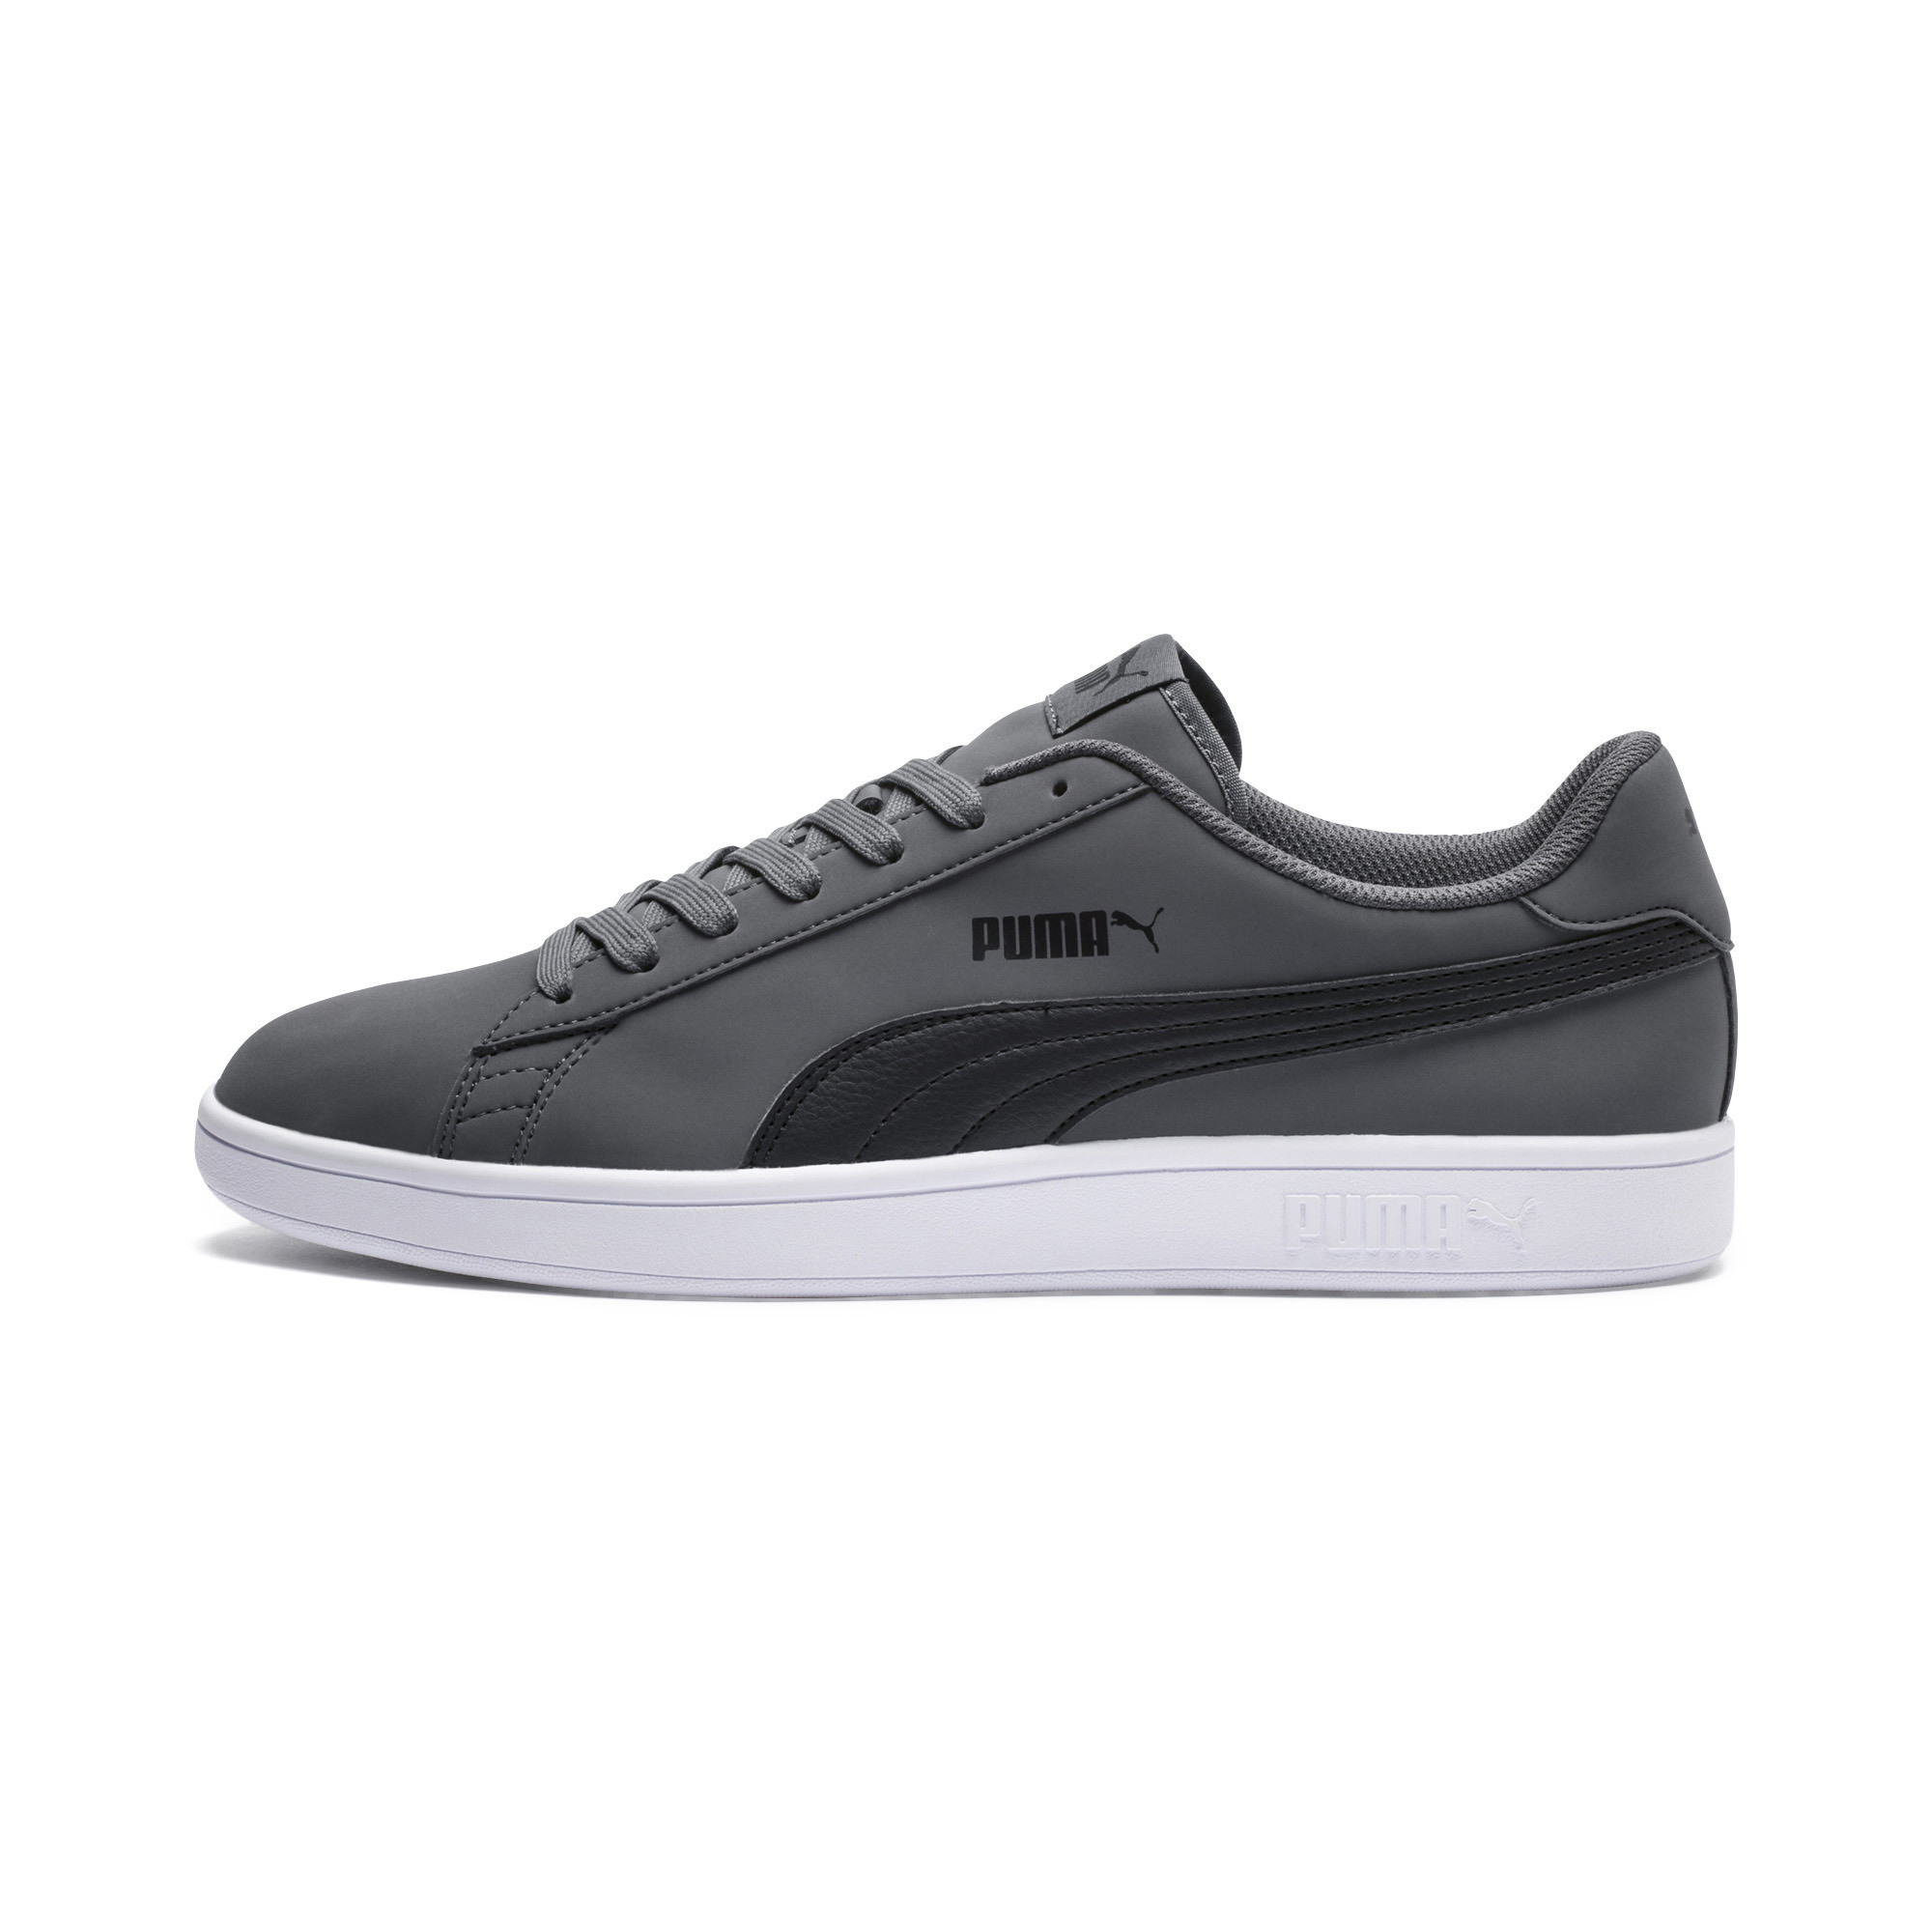 PUMA-PUMA-Smash-v2-Nubuck-Men-039-s-Sneakers-Men-Shoe-Basics thumbnail 10